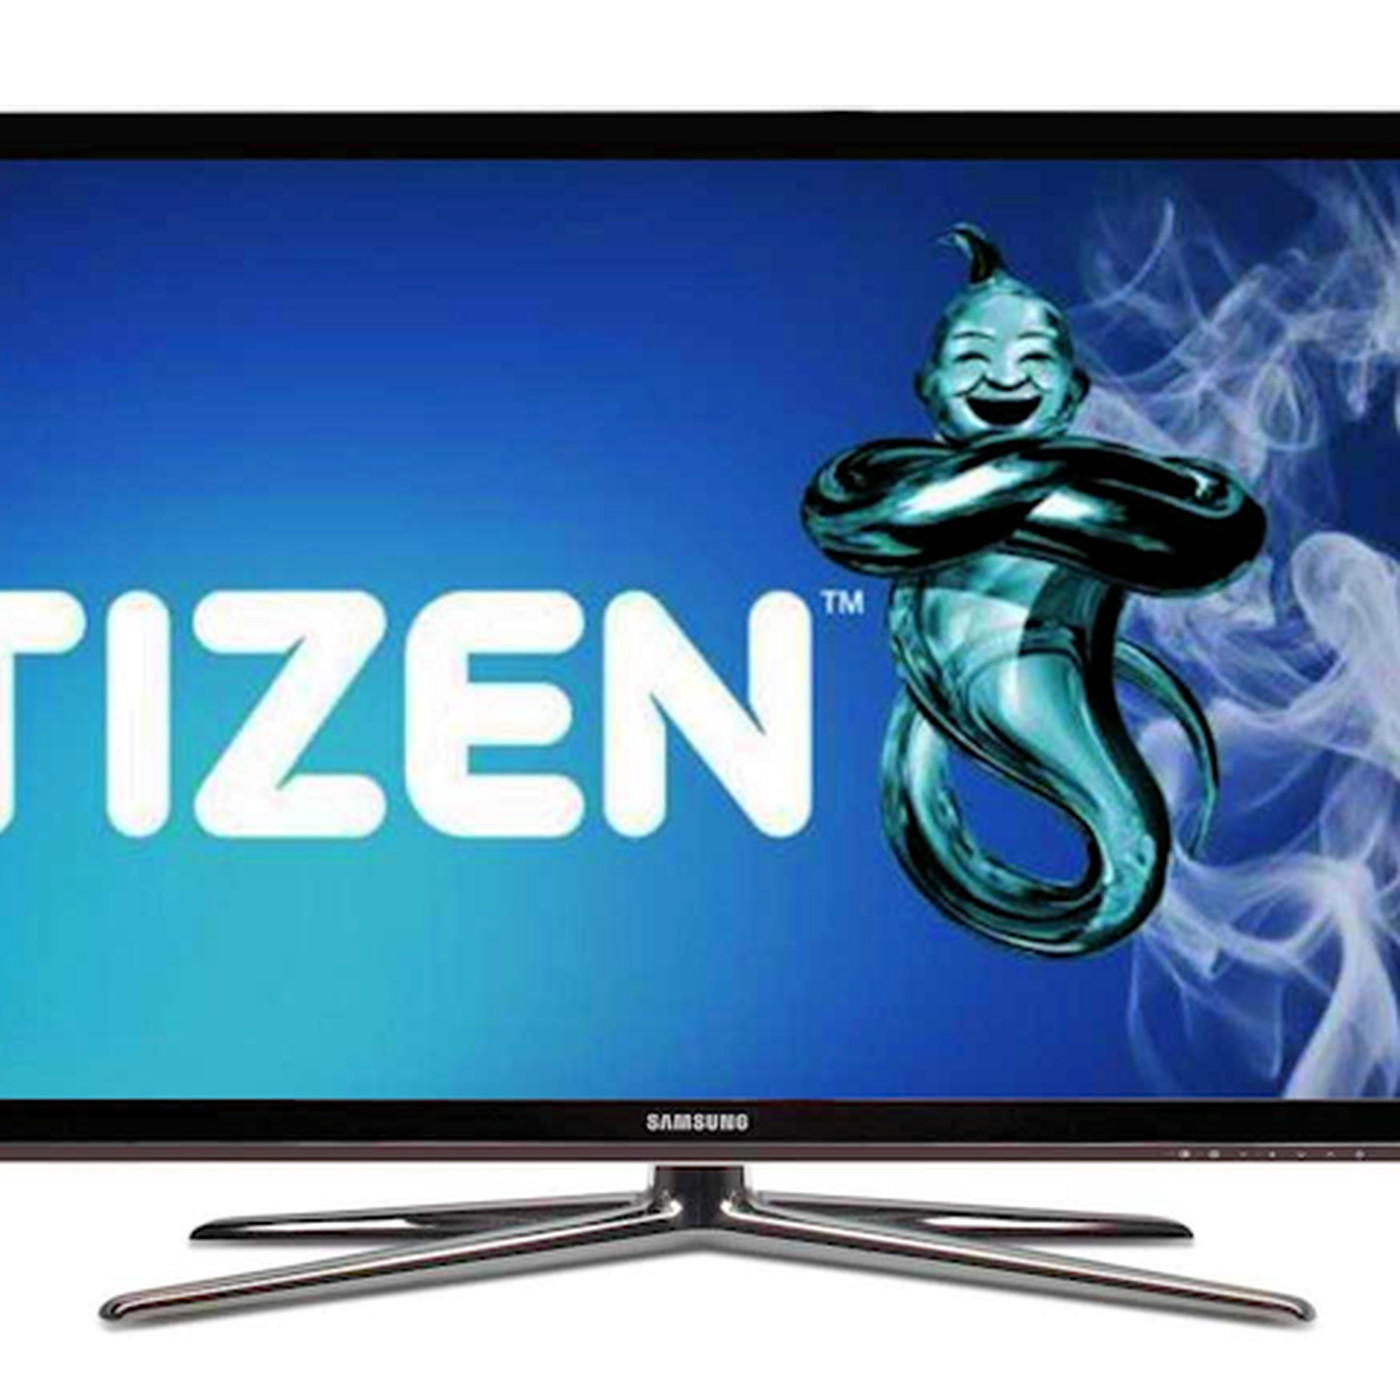 Samsung Will Put Tizen in Its Televisions  What the Heck Does That